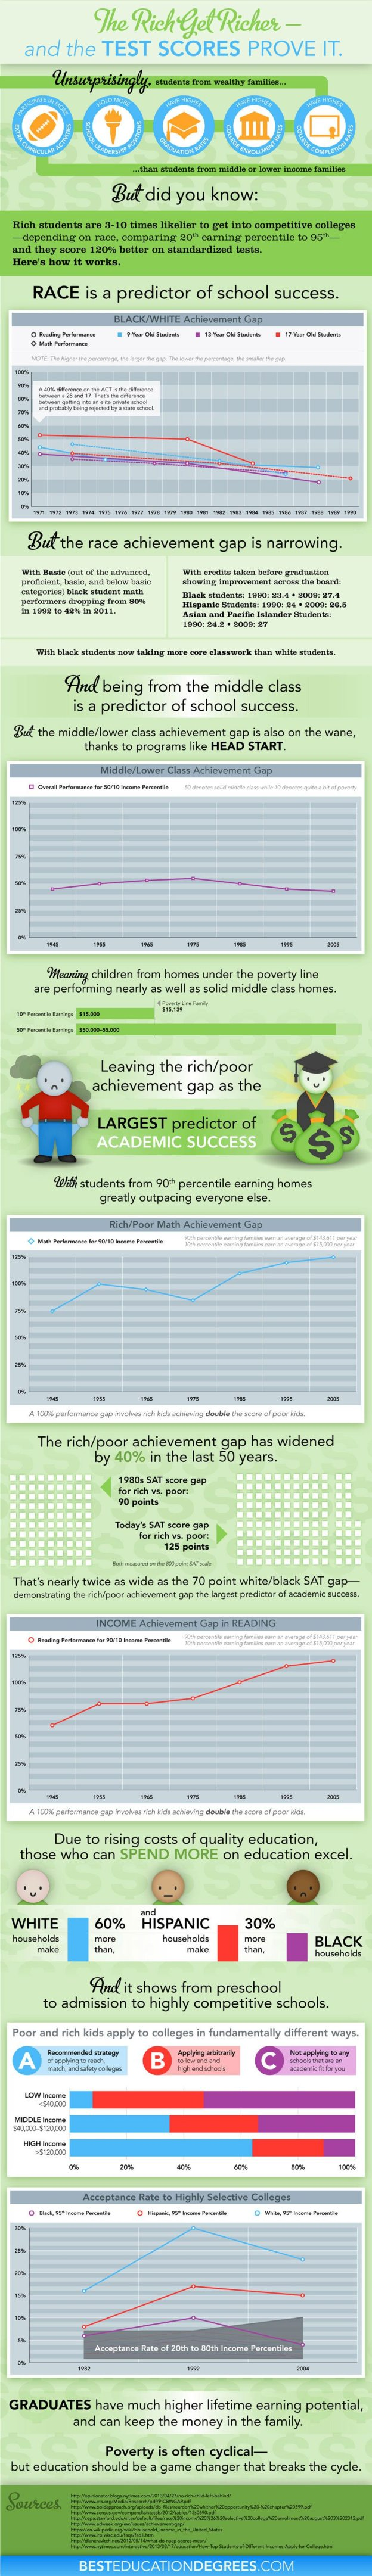 rich-poor-gap